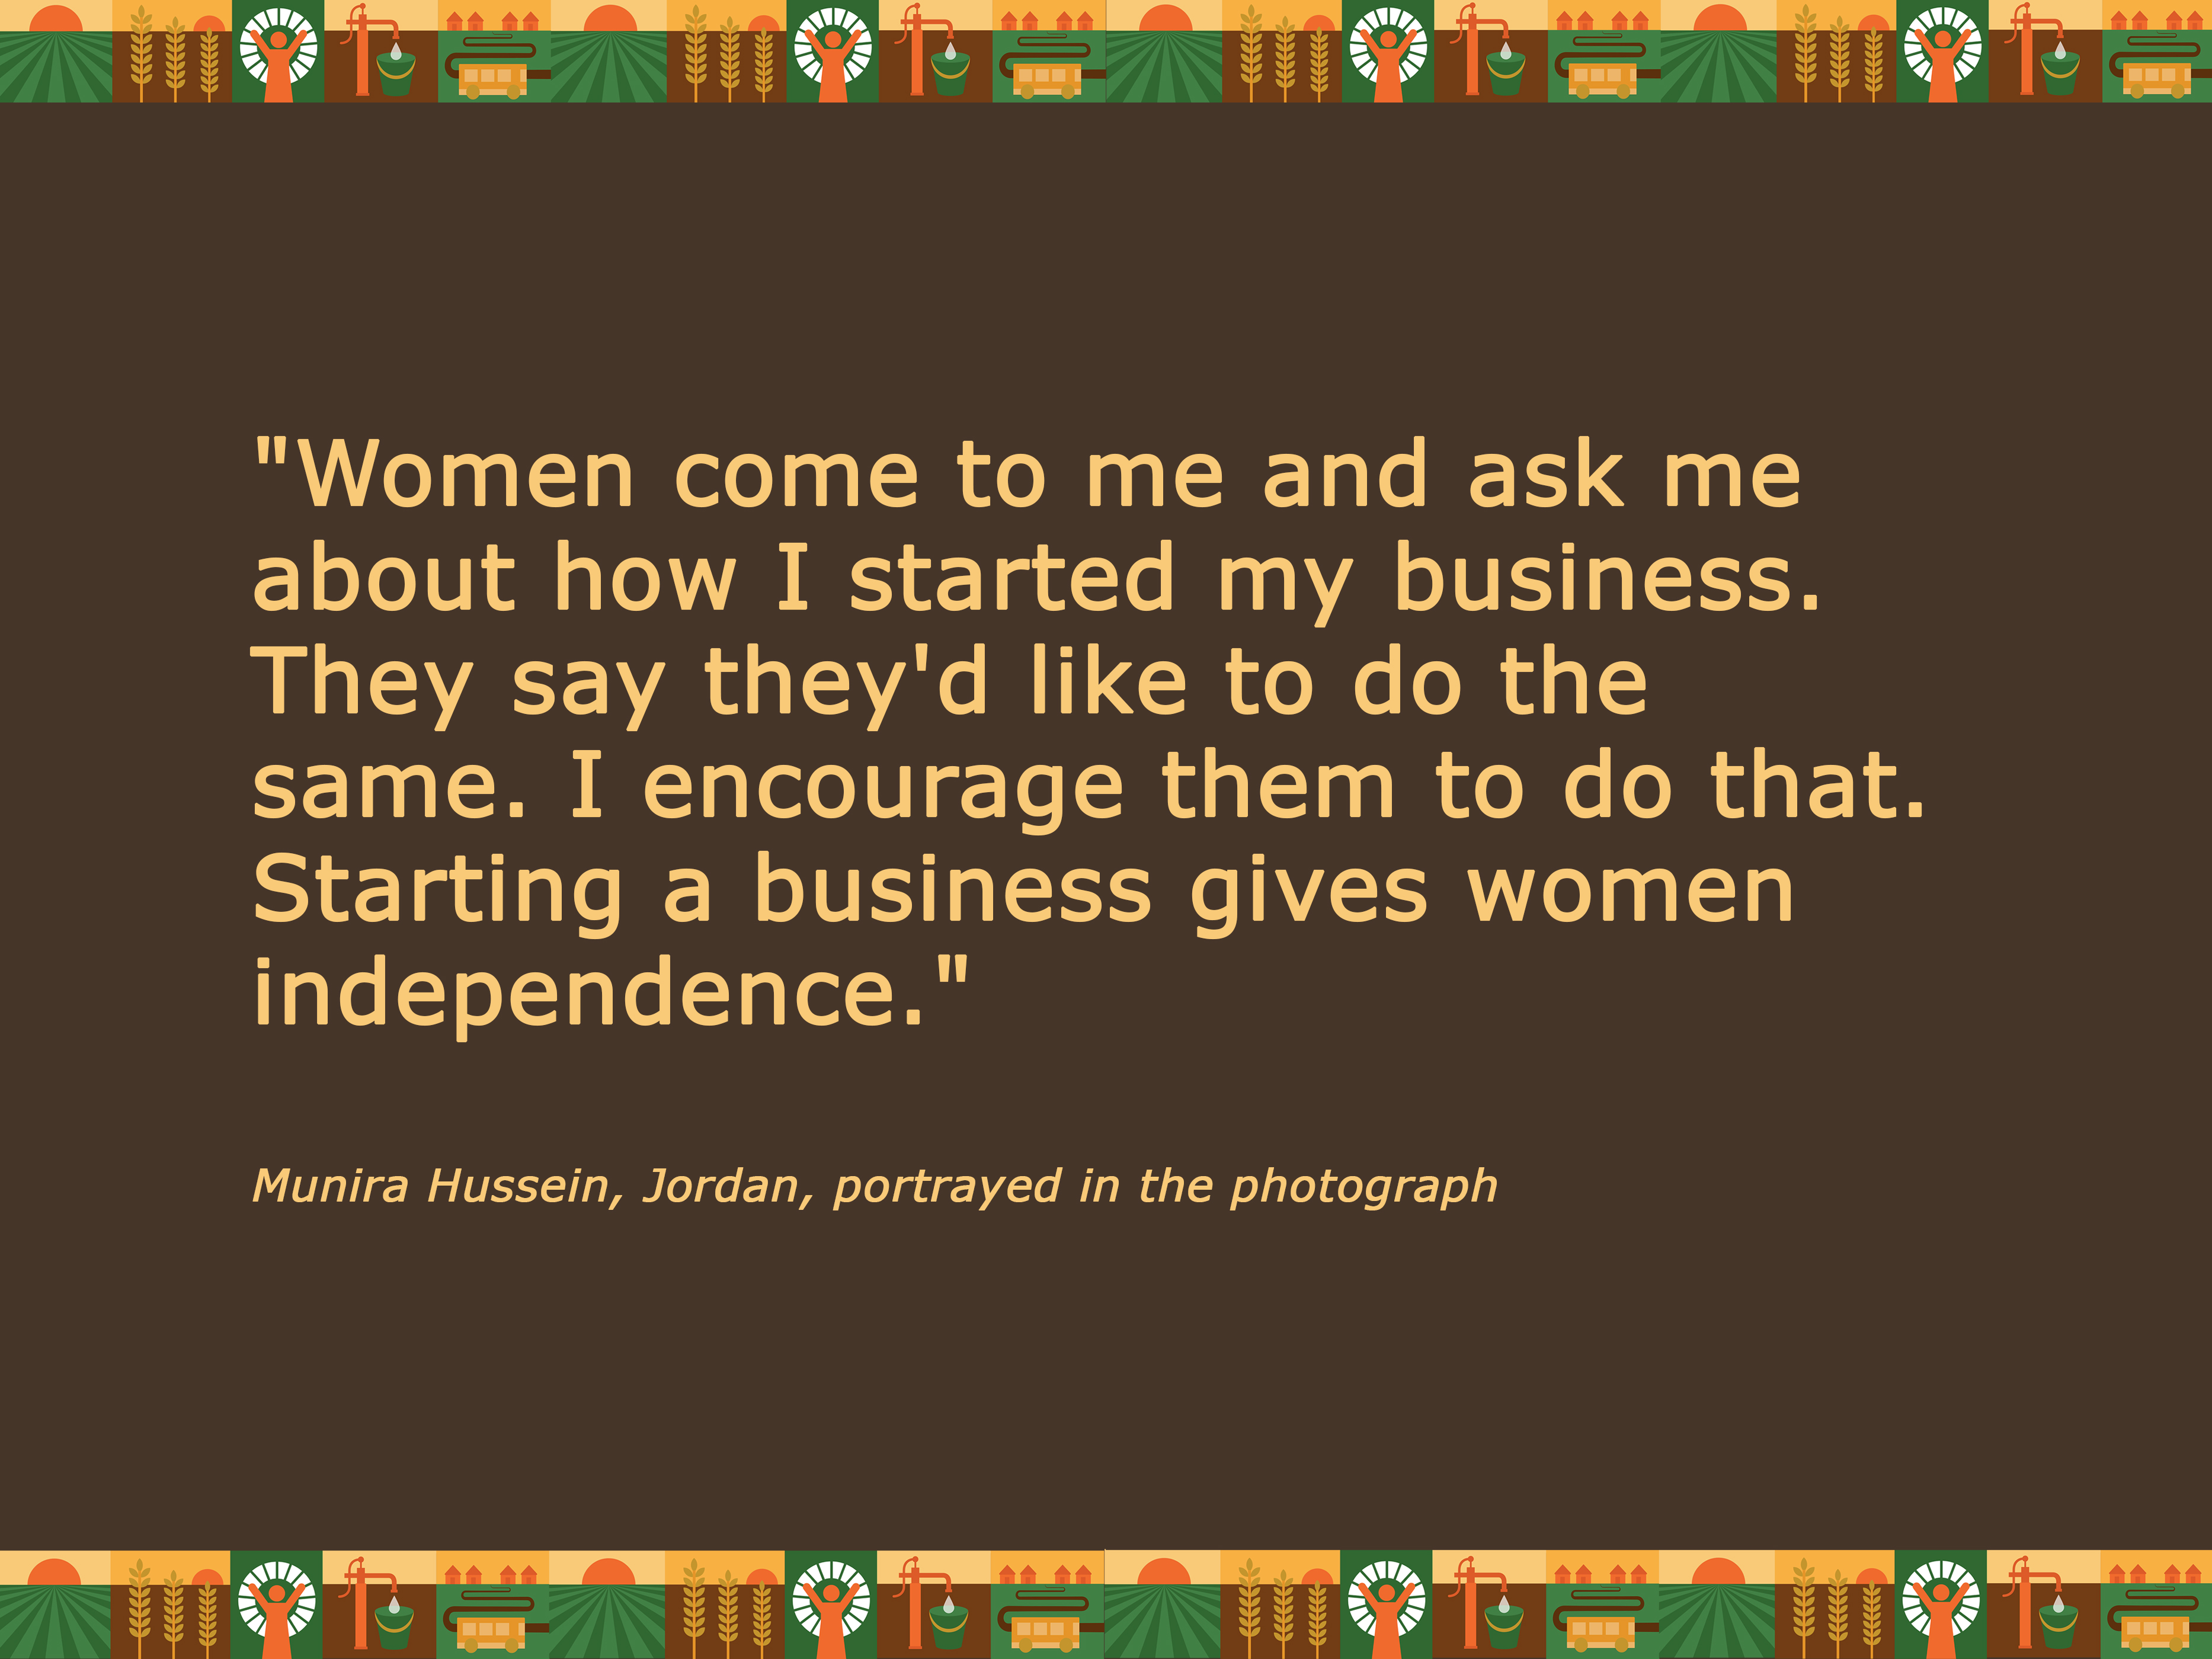 Quote:Women come to me and ask me about how I started my business. They say they'd like to do the same. I encourage them to do that. Starting a business gives women independence.